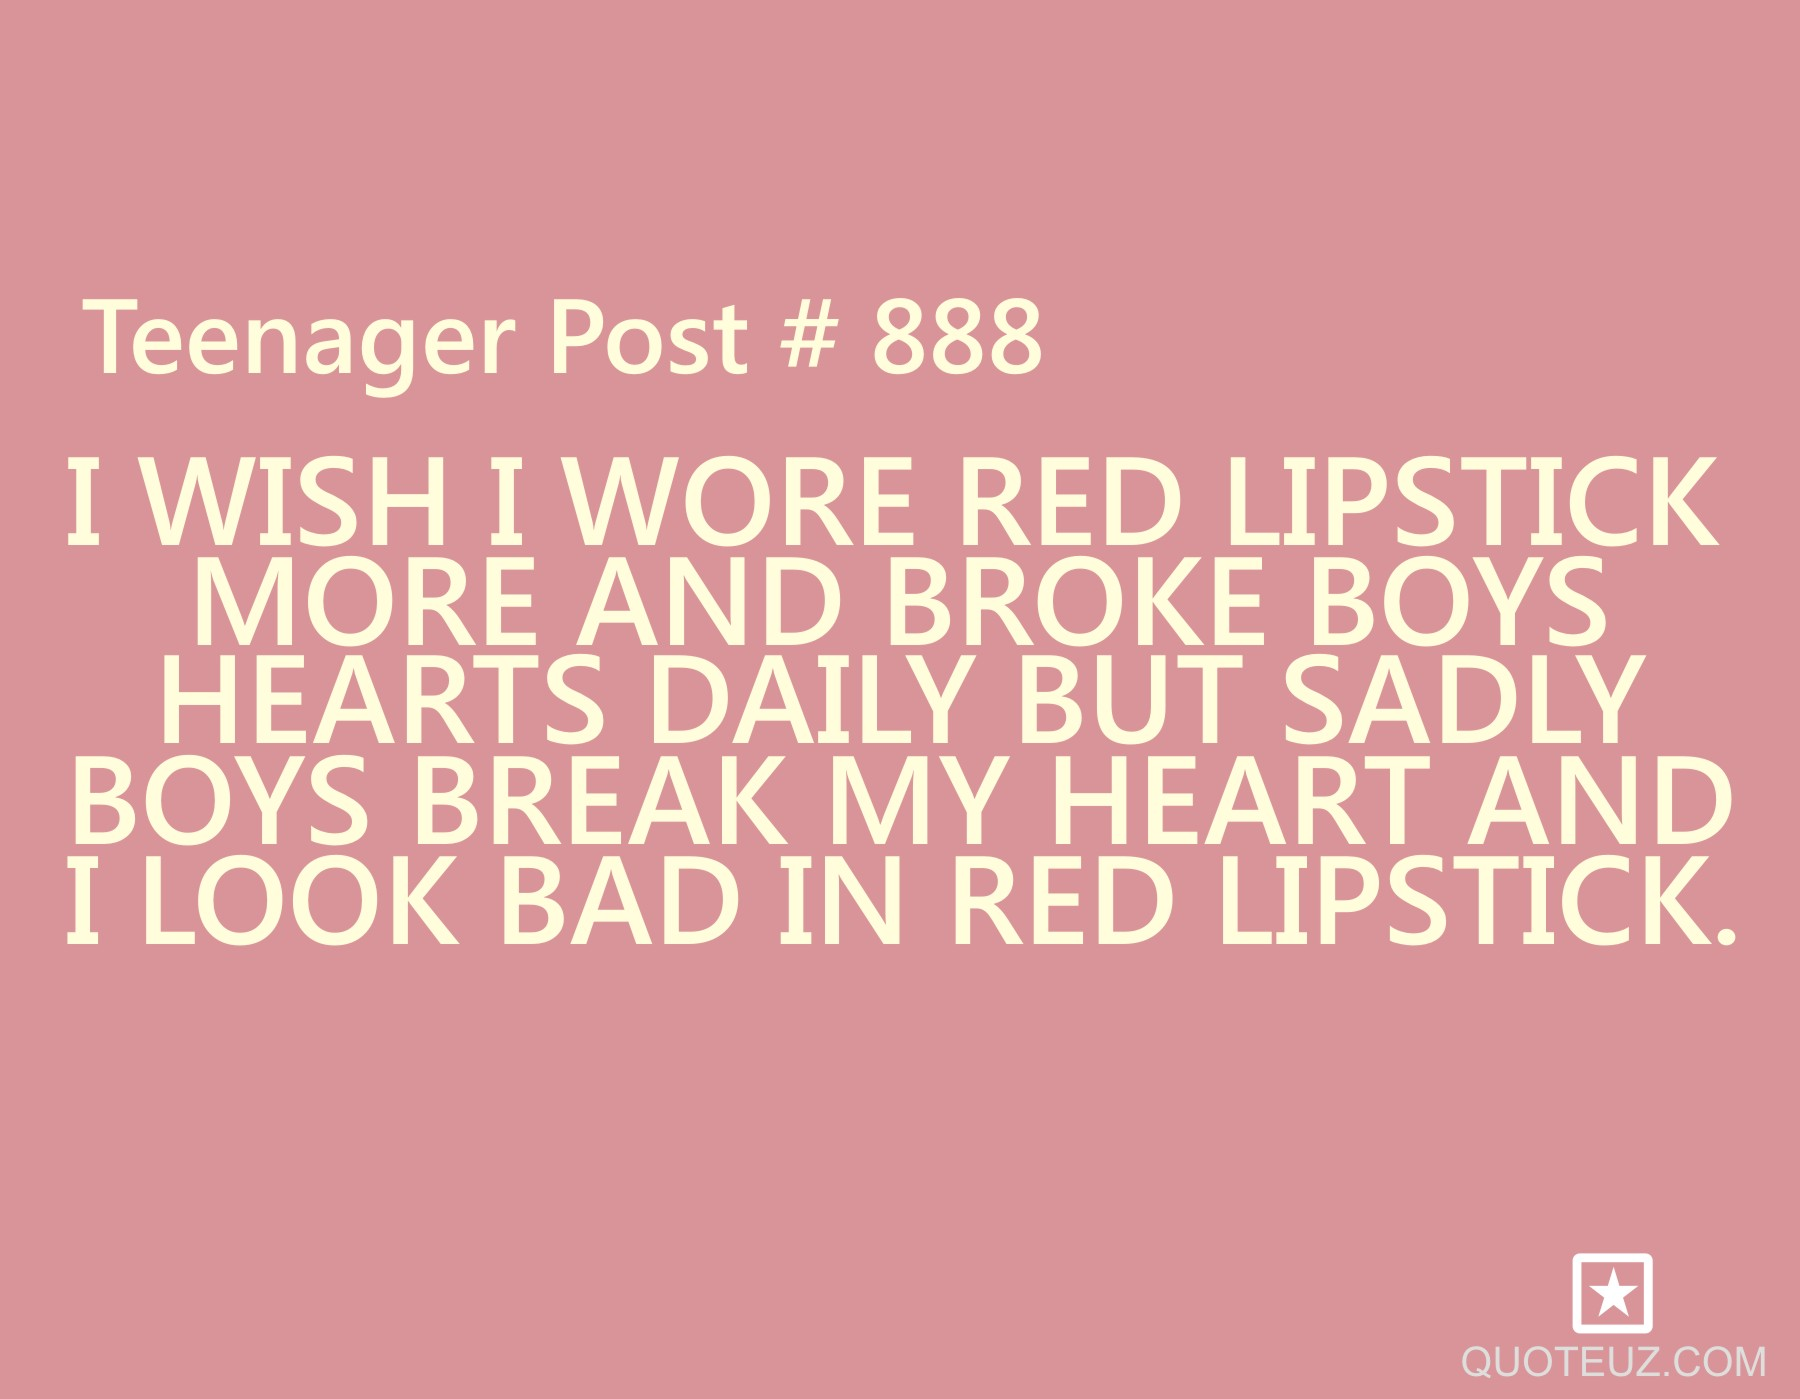 Quotes About Sharing Your Heart Quotesgram: Lipstick And Heart Quotes. QuotesGram